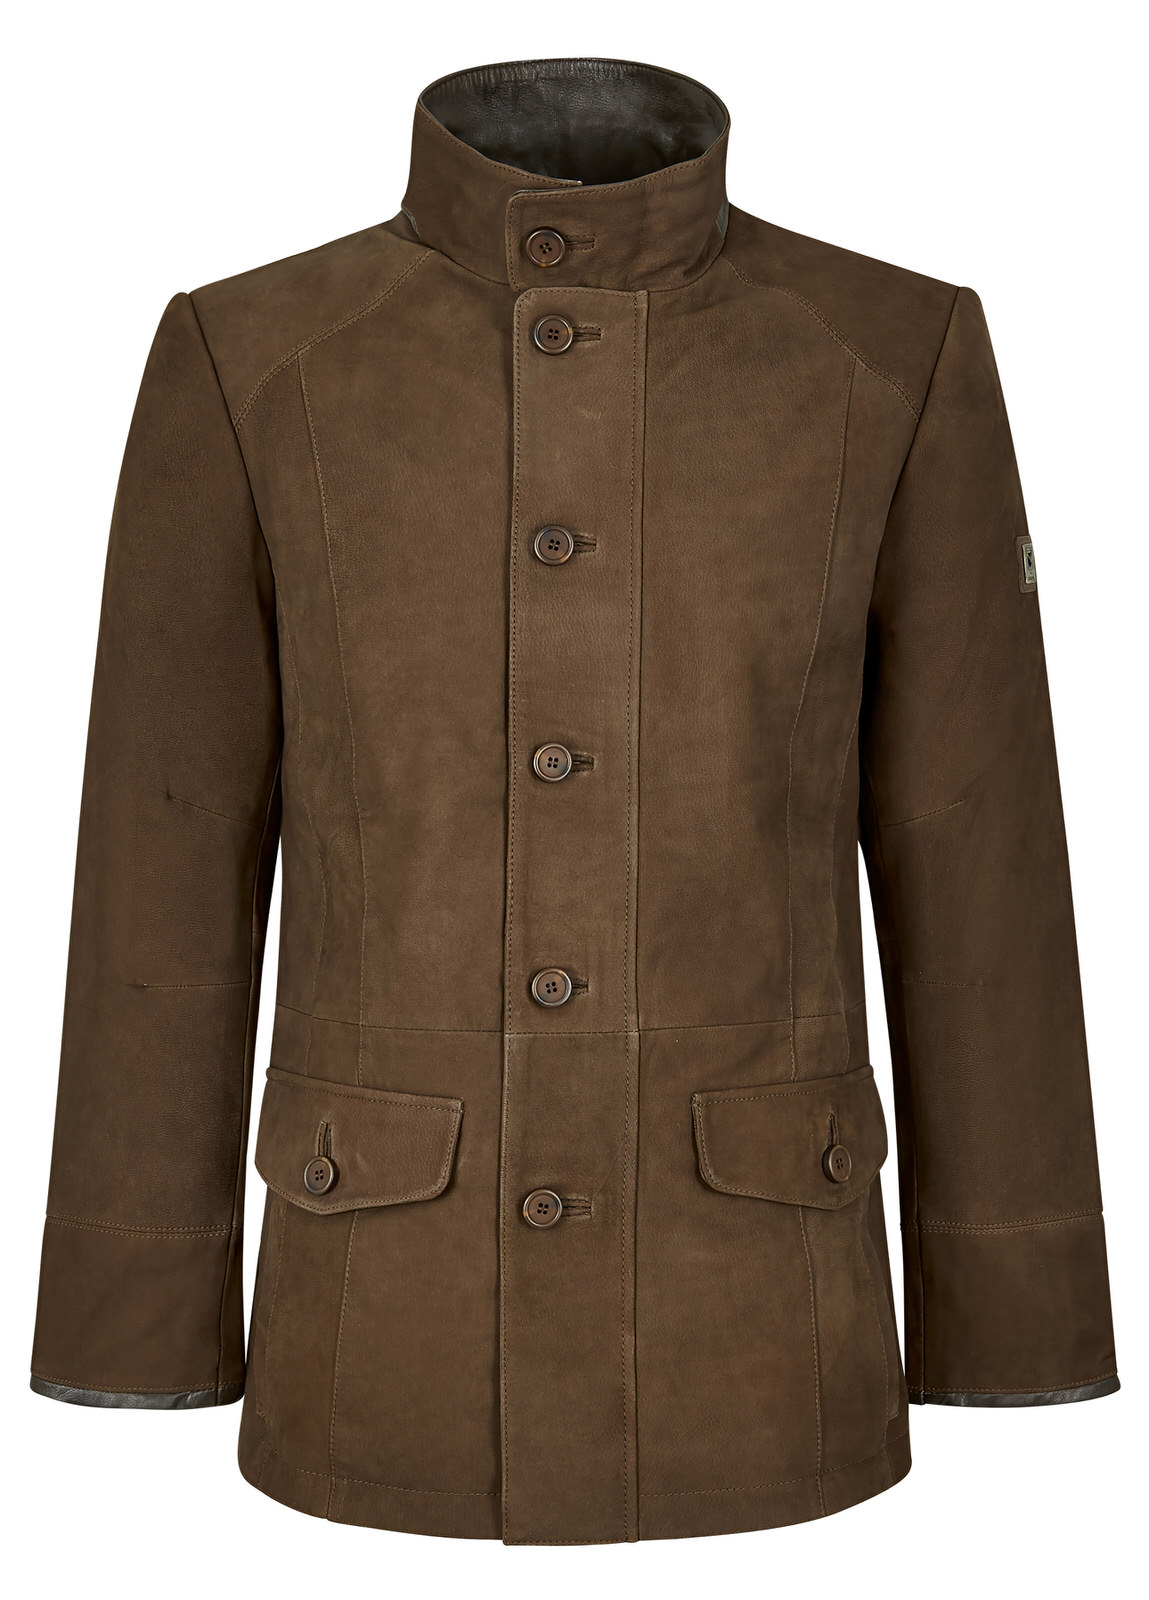 Moore_Leather_Jacket_Walnut_Image_1